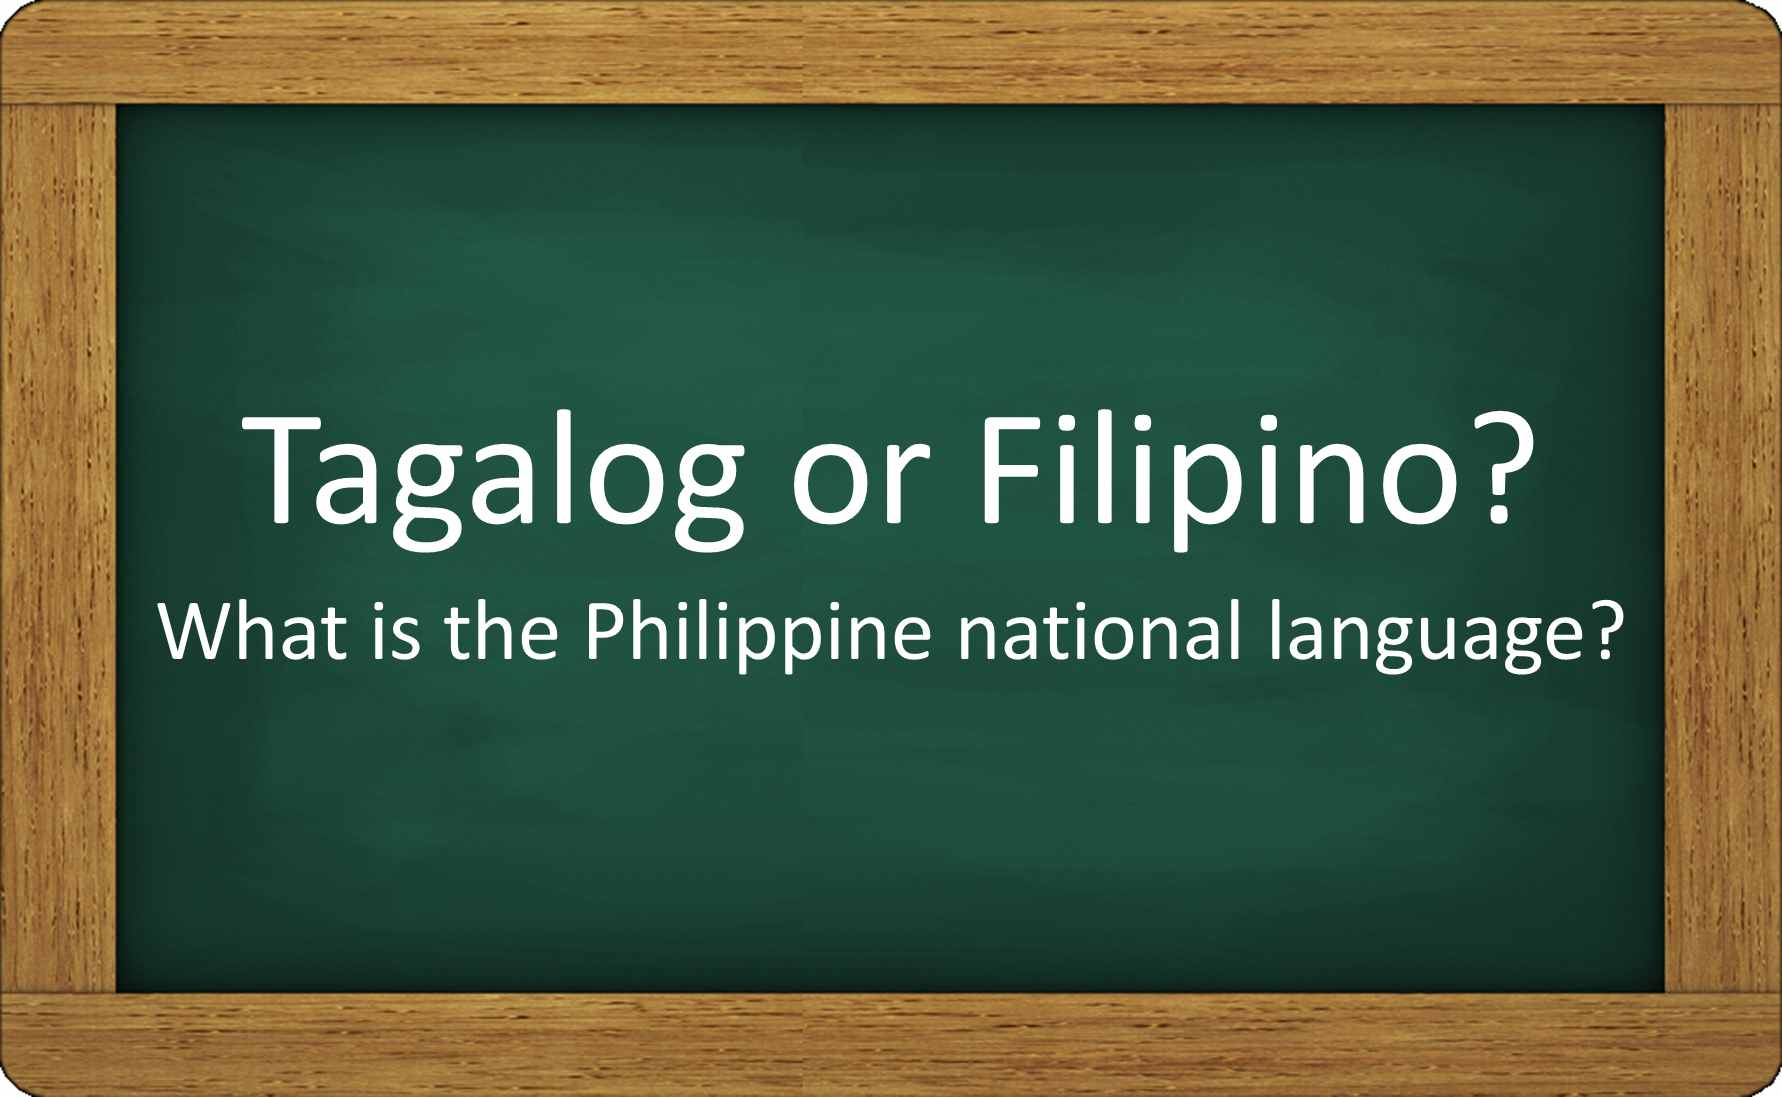 What's the difference between Tagalog and Filipino? Or are they the same?